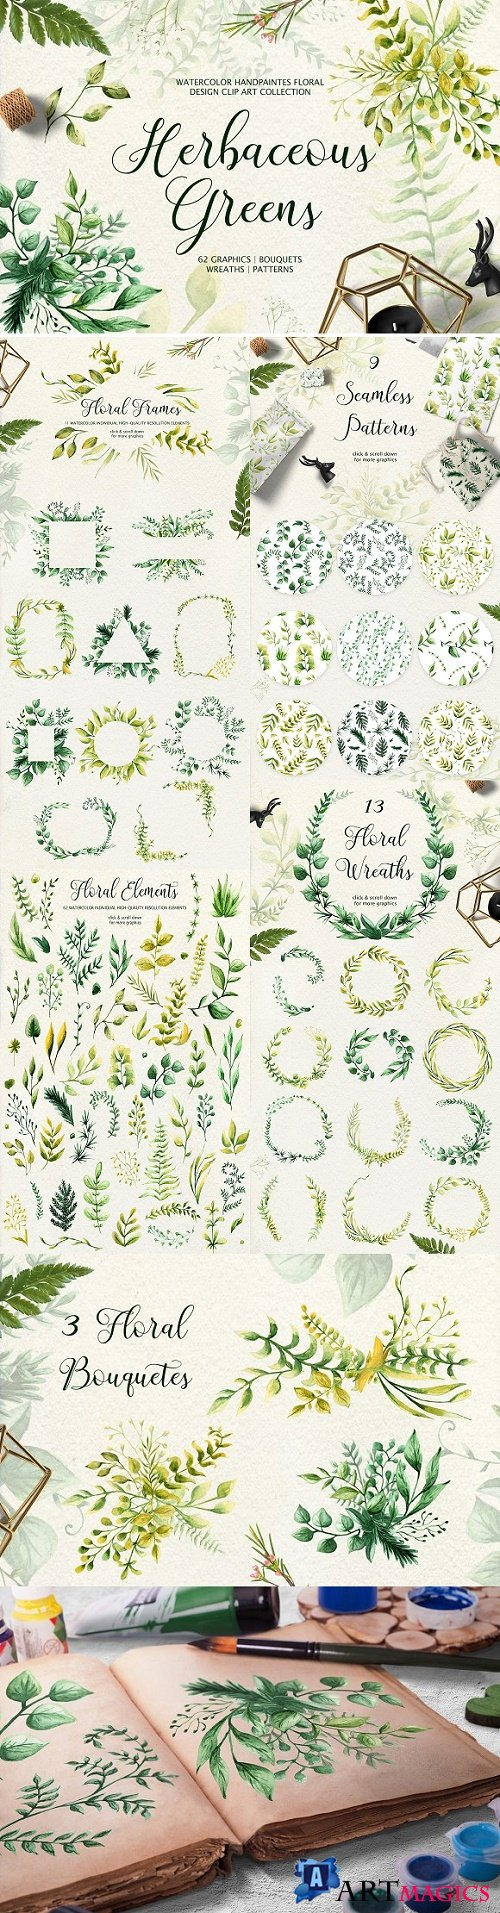 Herbaceous Greens-watercolor set 2534083